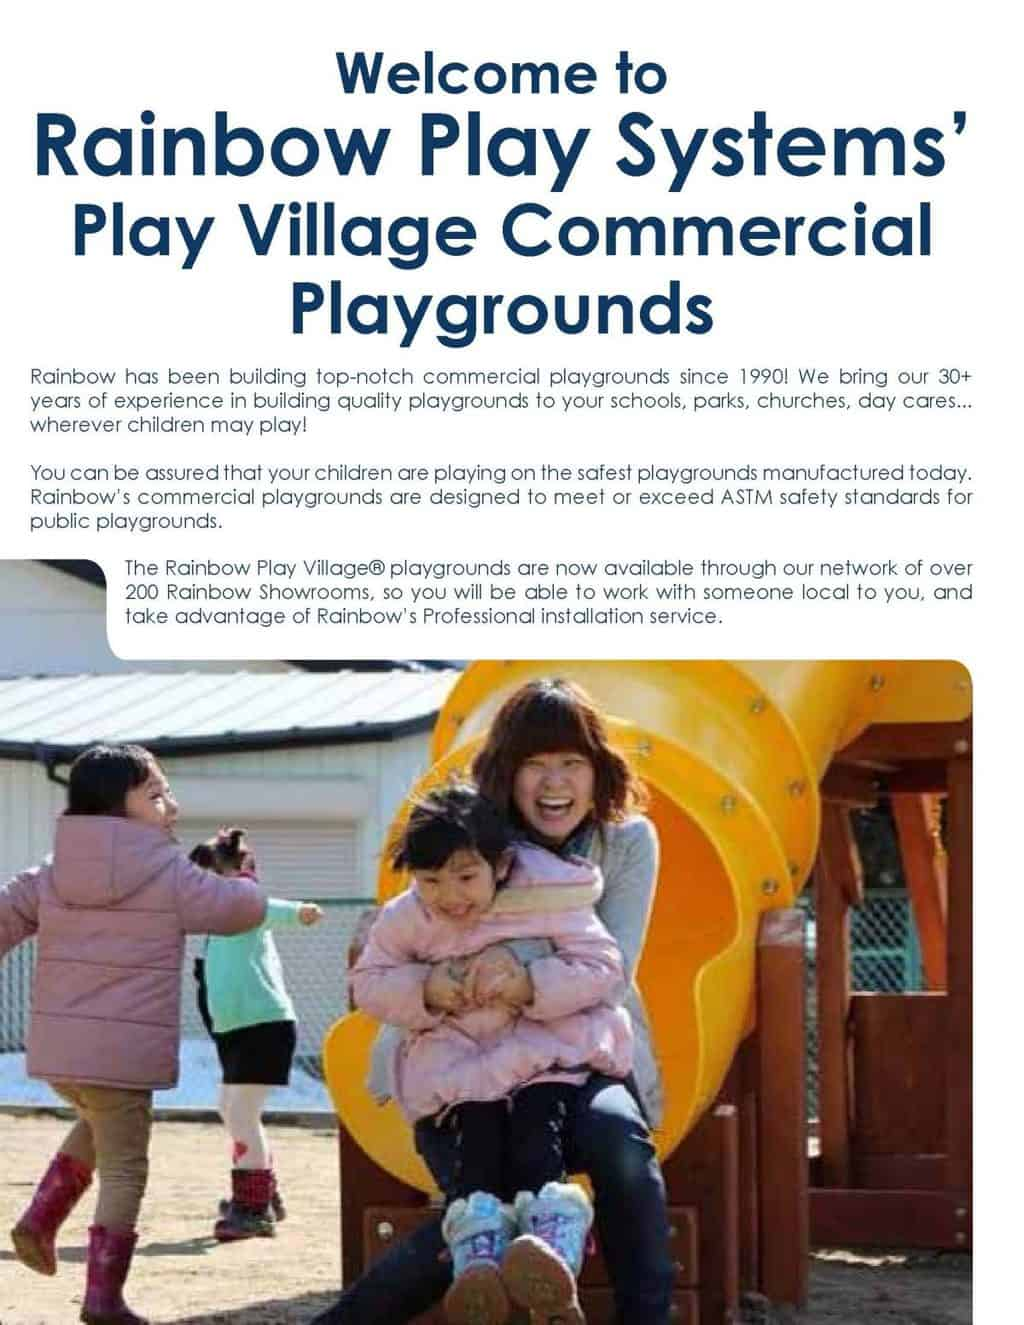 Rainbow Play Village Design 603 (35)